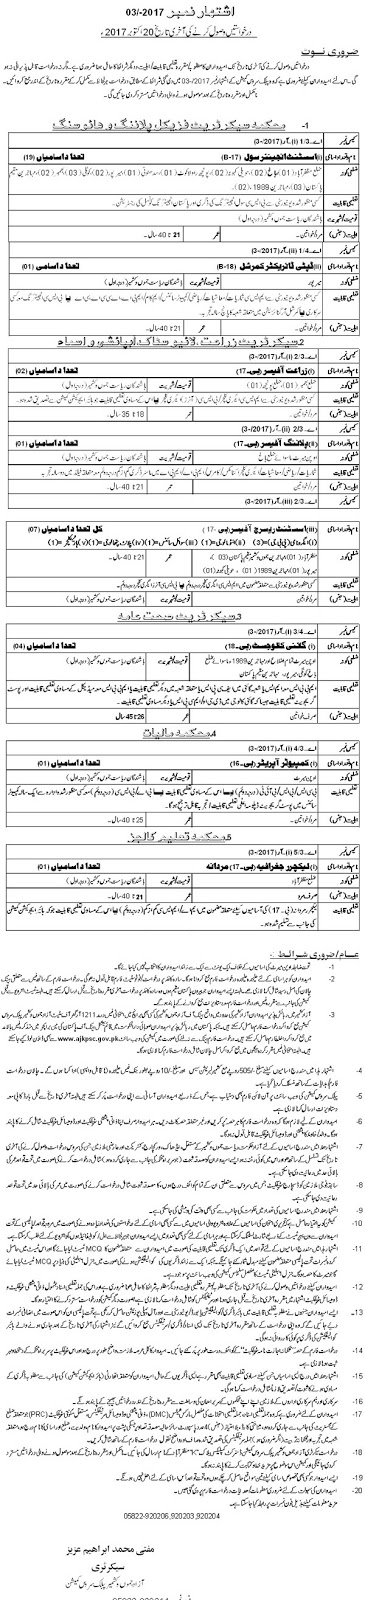 Jobs in Azad Kashmir Public Service Commission - AJKPSC